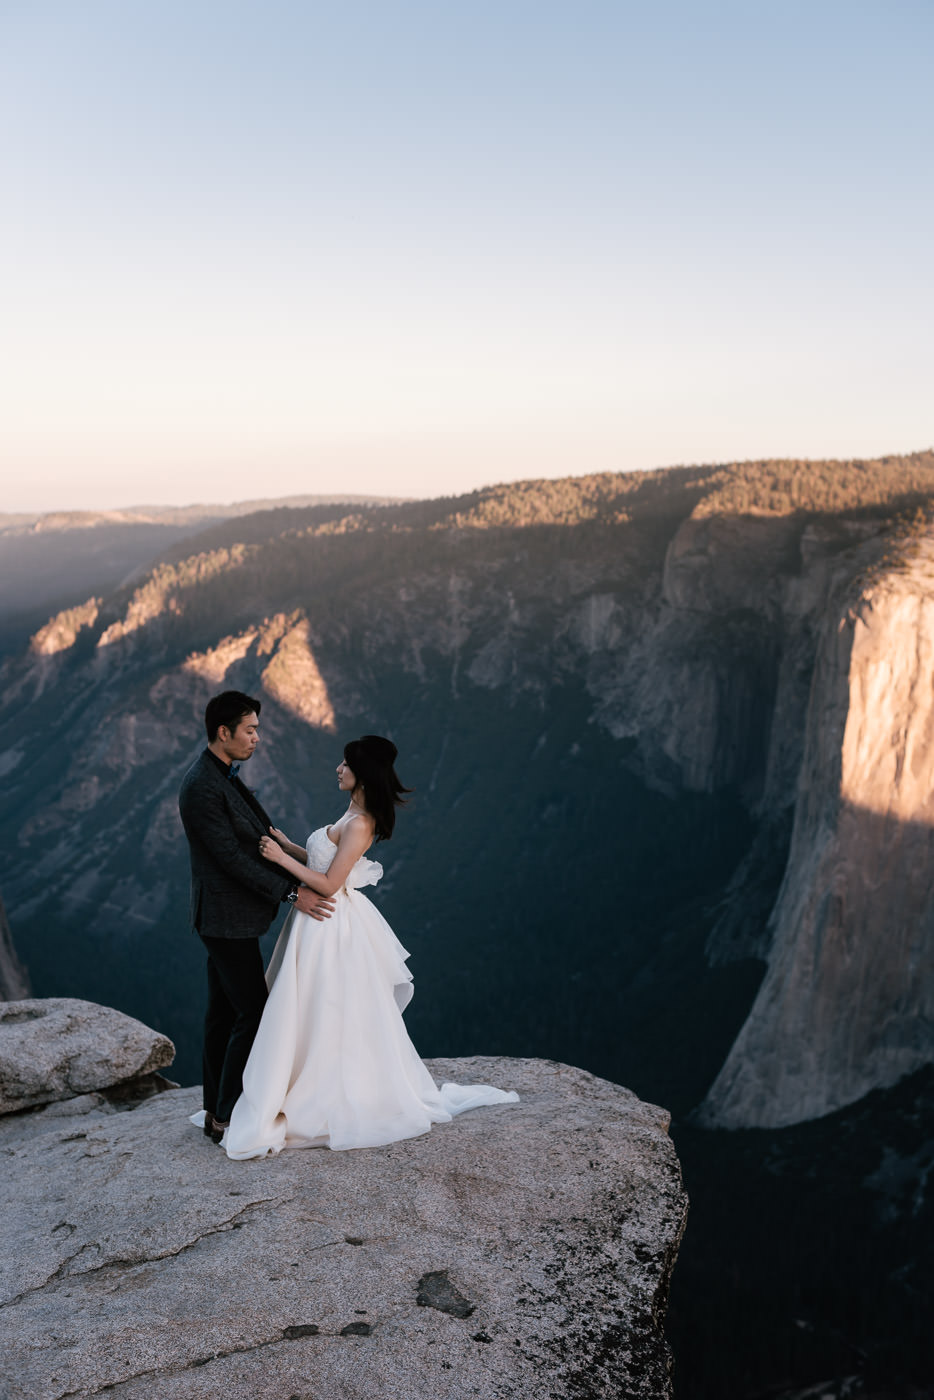 Best destination wedding photographers for adventurous weddings.